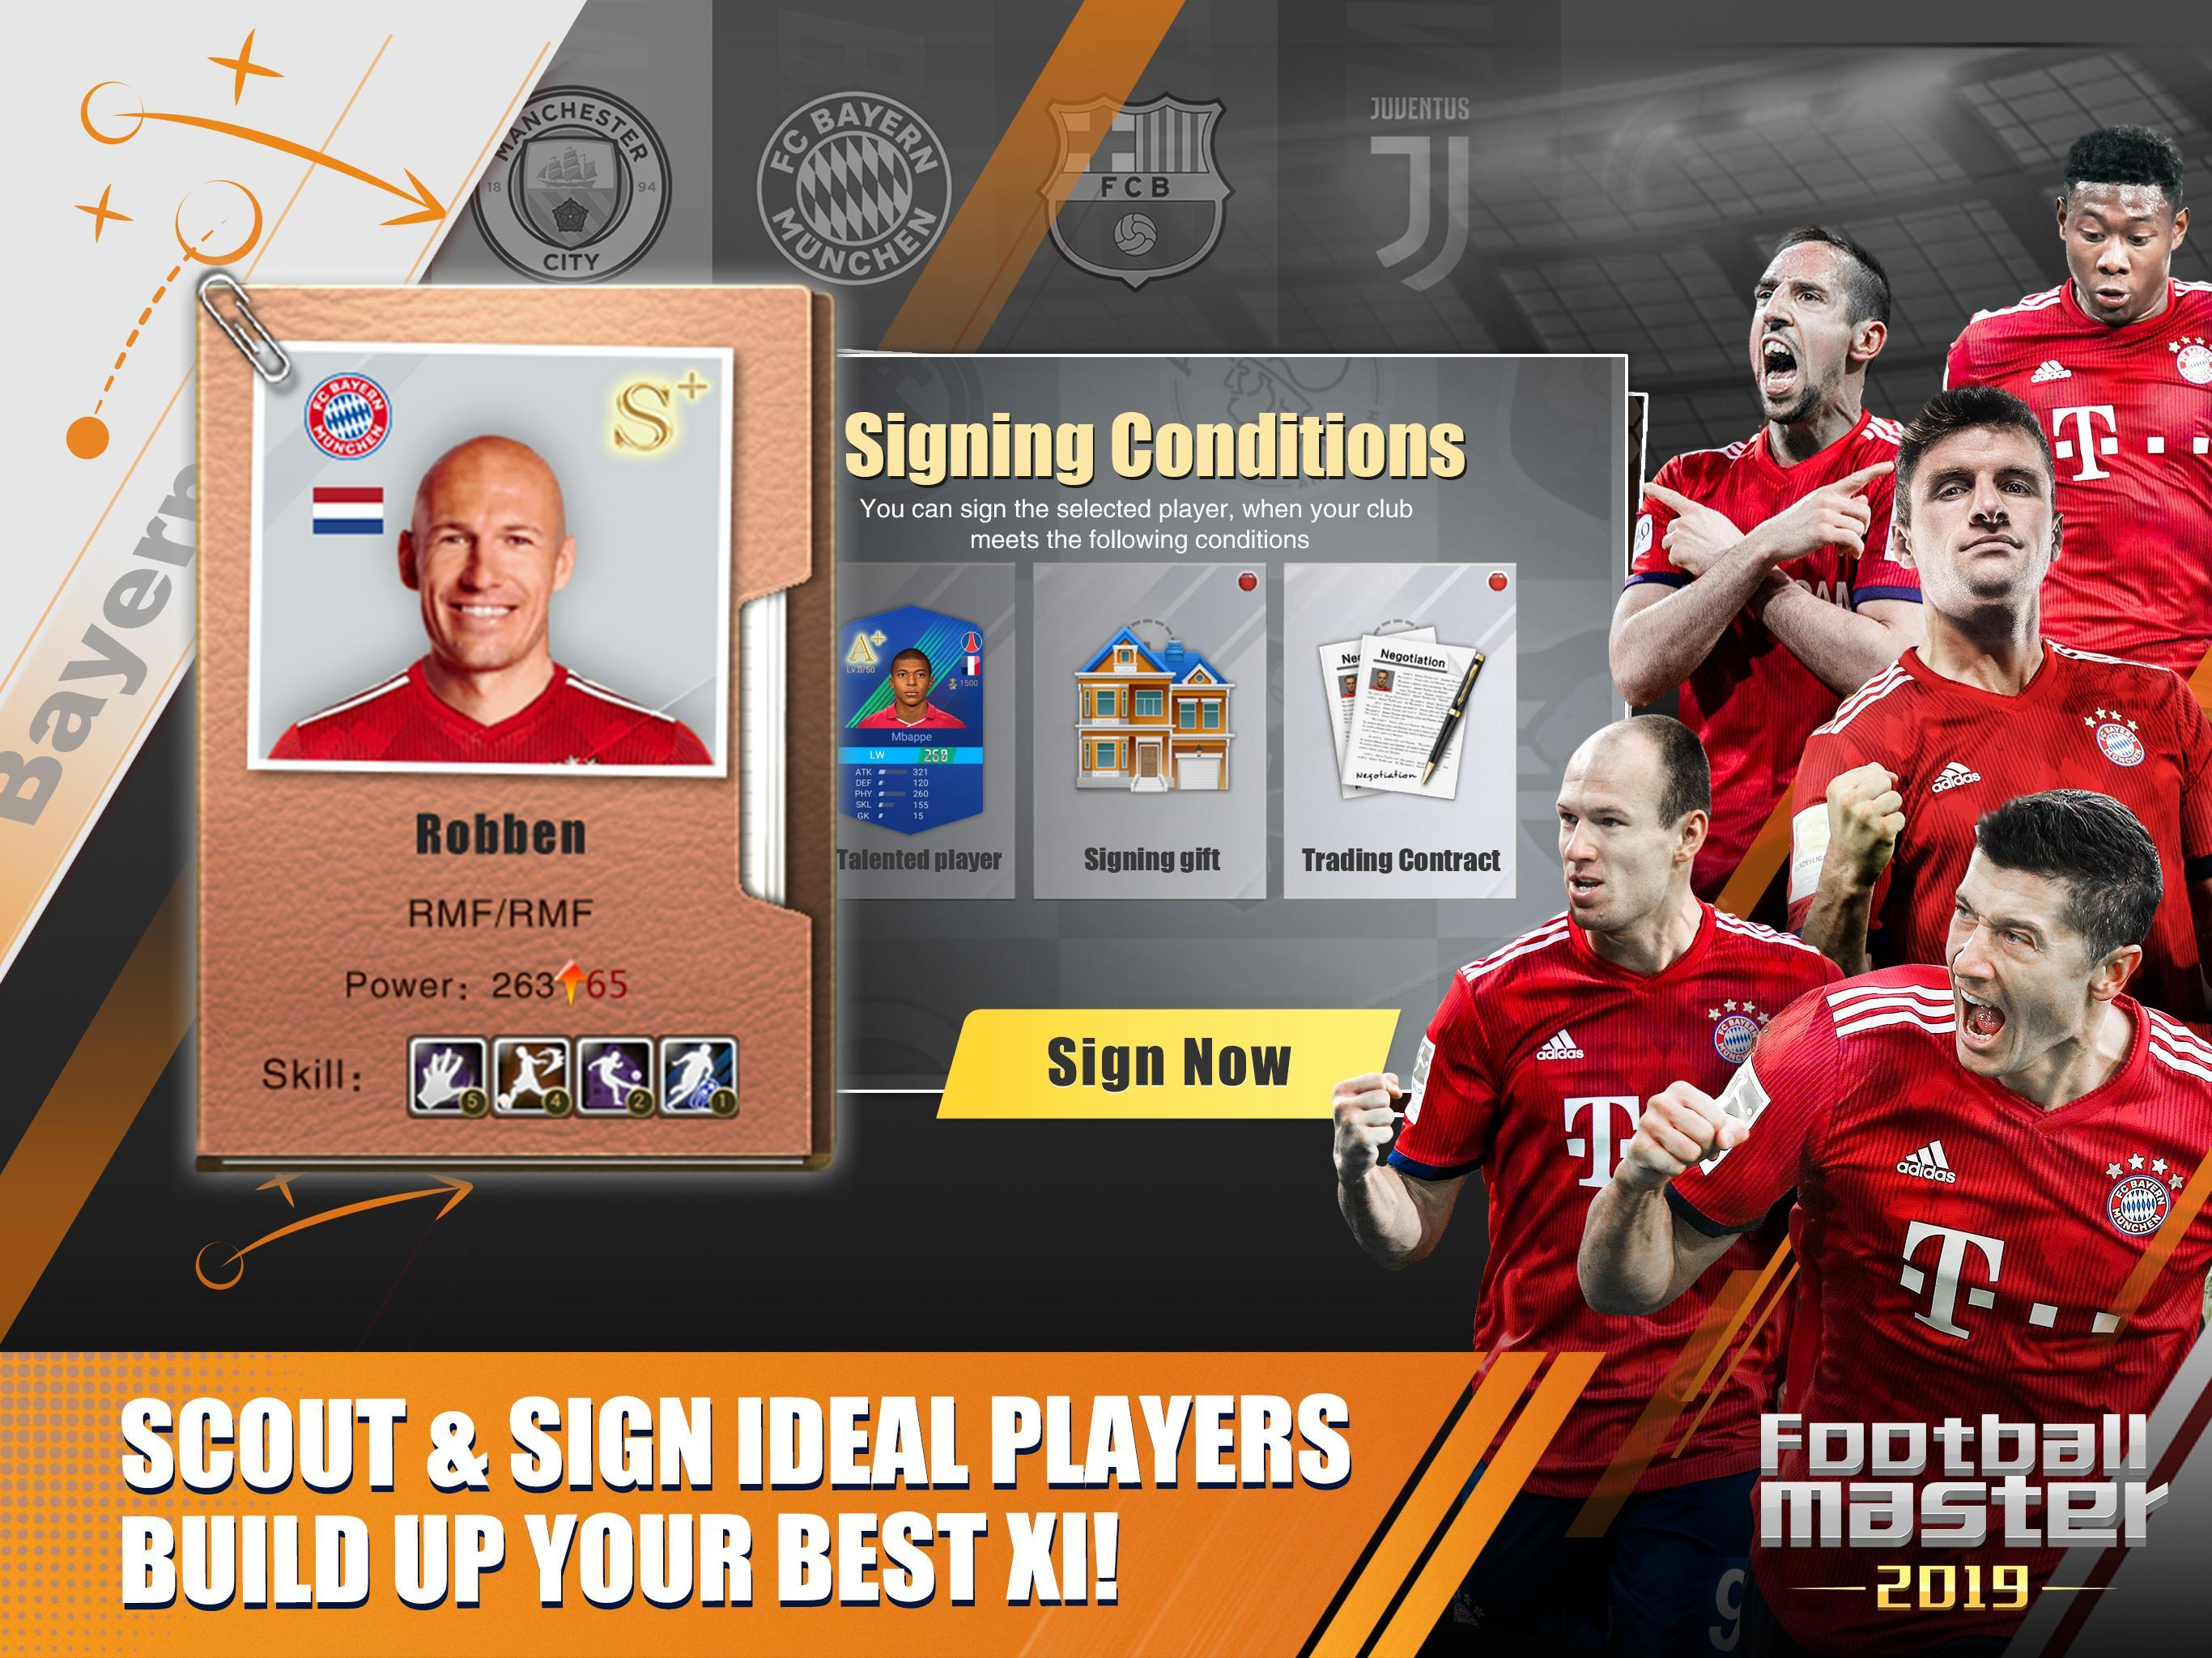 Football Master 2019 for Android - APK Download